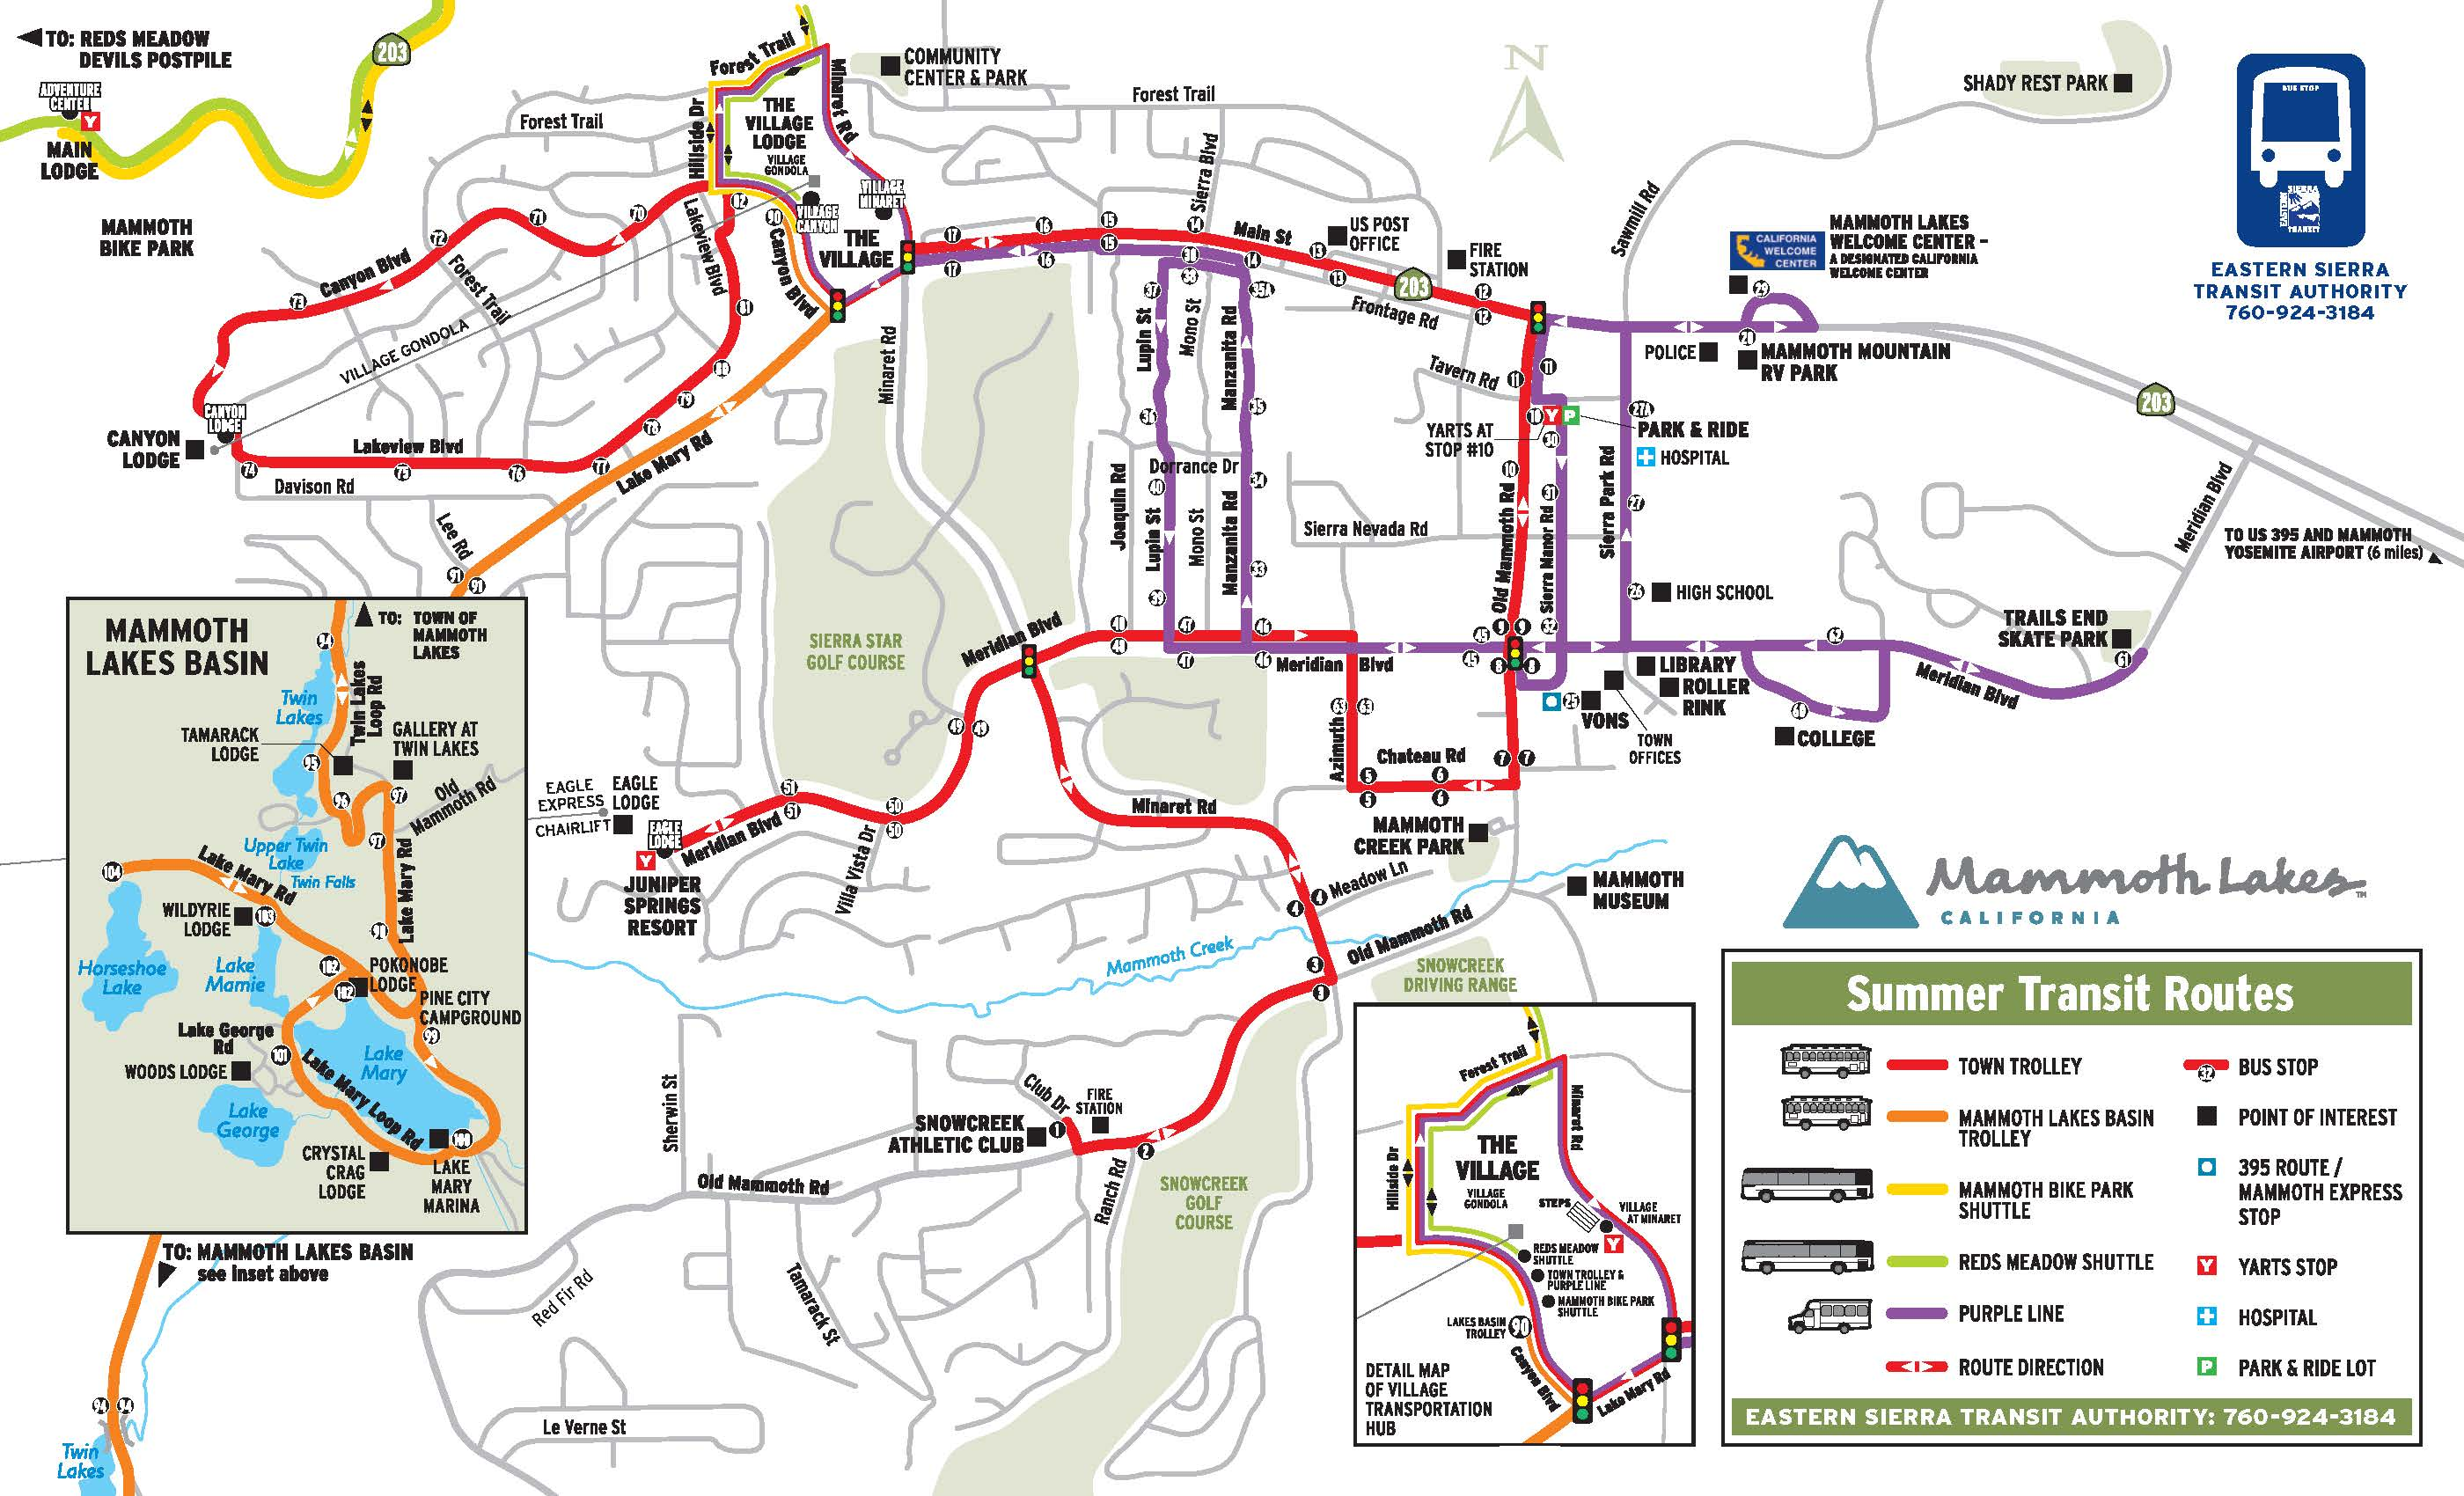 Free Mountain Shuttle Service | See Routes | Mammoth Mountain on chico hot springs map, pagosa hot springs map, granite hot springs map, yellowstone national park hiking trails map, natural hot springs map, deep creek hot springs map, stanley hot springs map, yellowstone hot springs map, palm springs hot springs map, nevada hot springs map, gold strike hot springs map, diamond fork hot springs map, convict lake campground map, bishop hot springs map, sol duc hot springs map, desert hot springs street map, great lakes topo map, verde hot springs map, hot springs california map, goldmyer hot springs map,